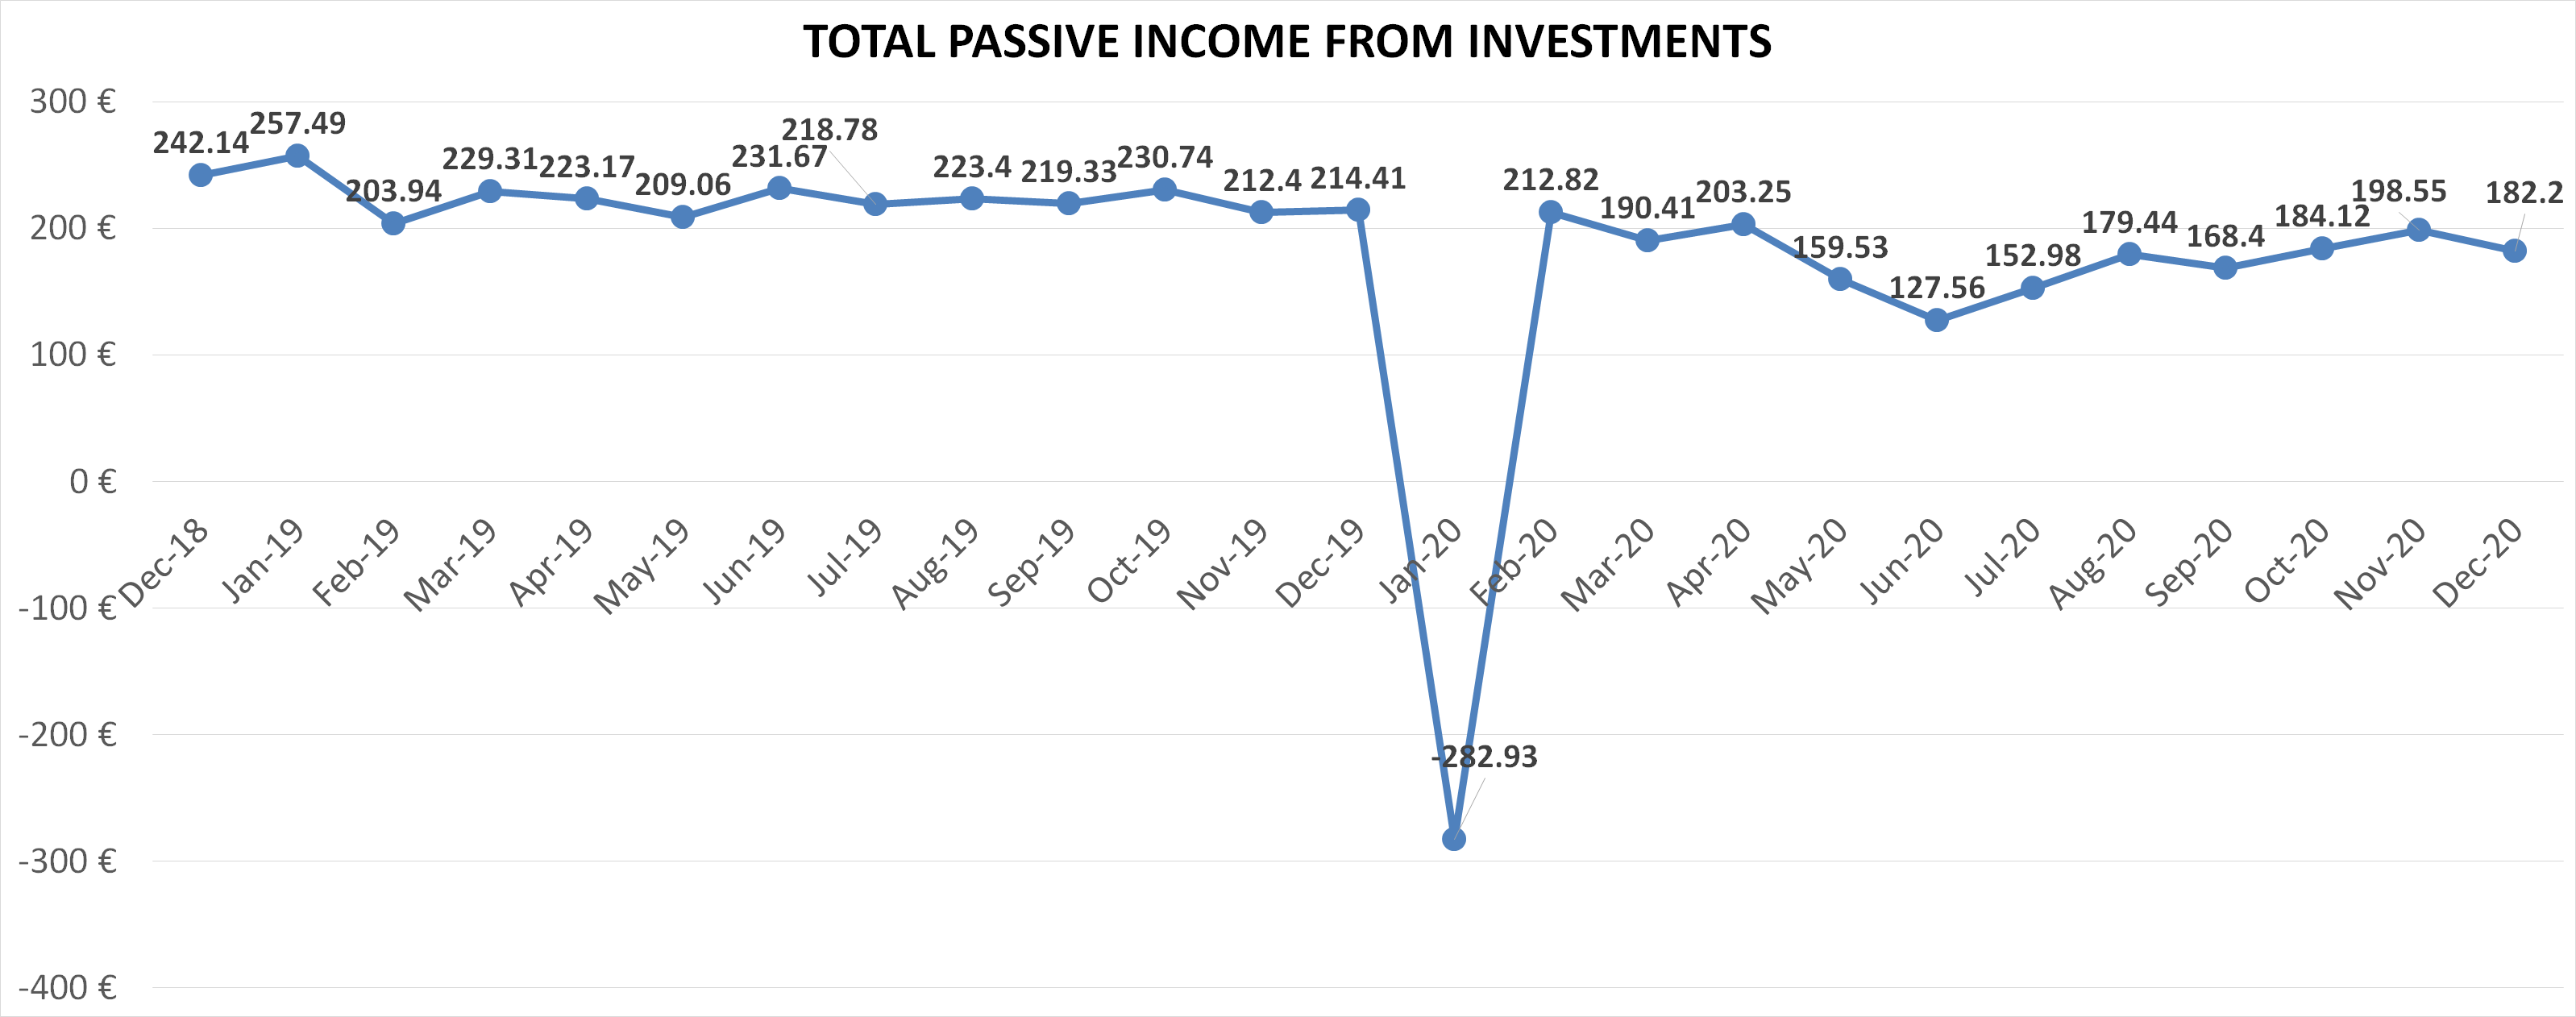 Total passive income from investments in december 2020